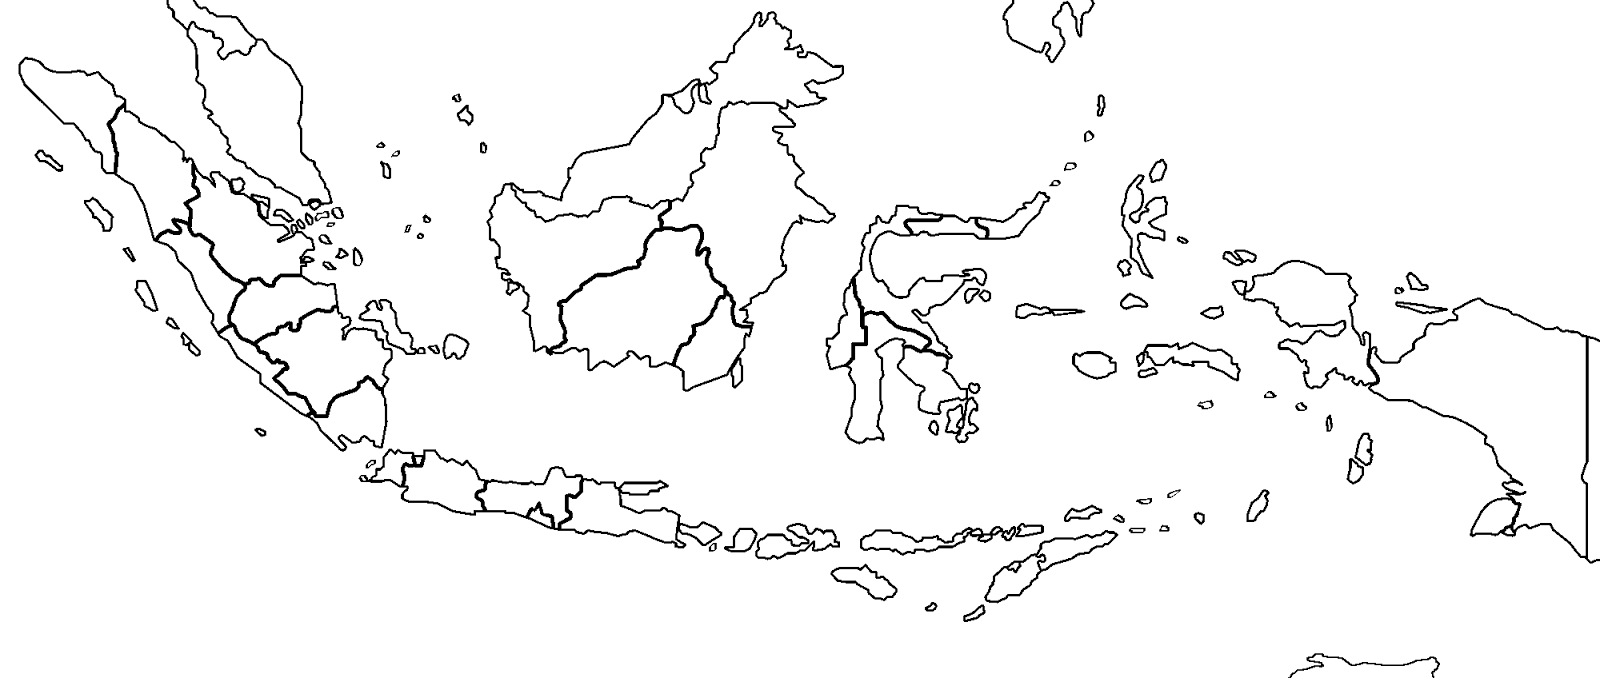 Peta Indonesia Full Hd Peta Buta Indonesia World Map Weltkarte Peta Dunia